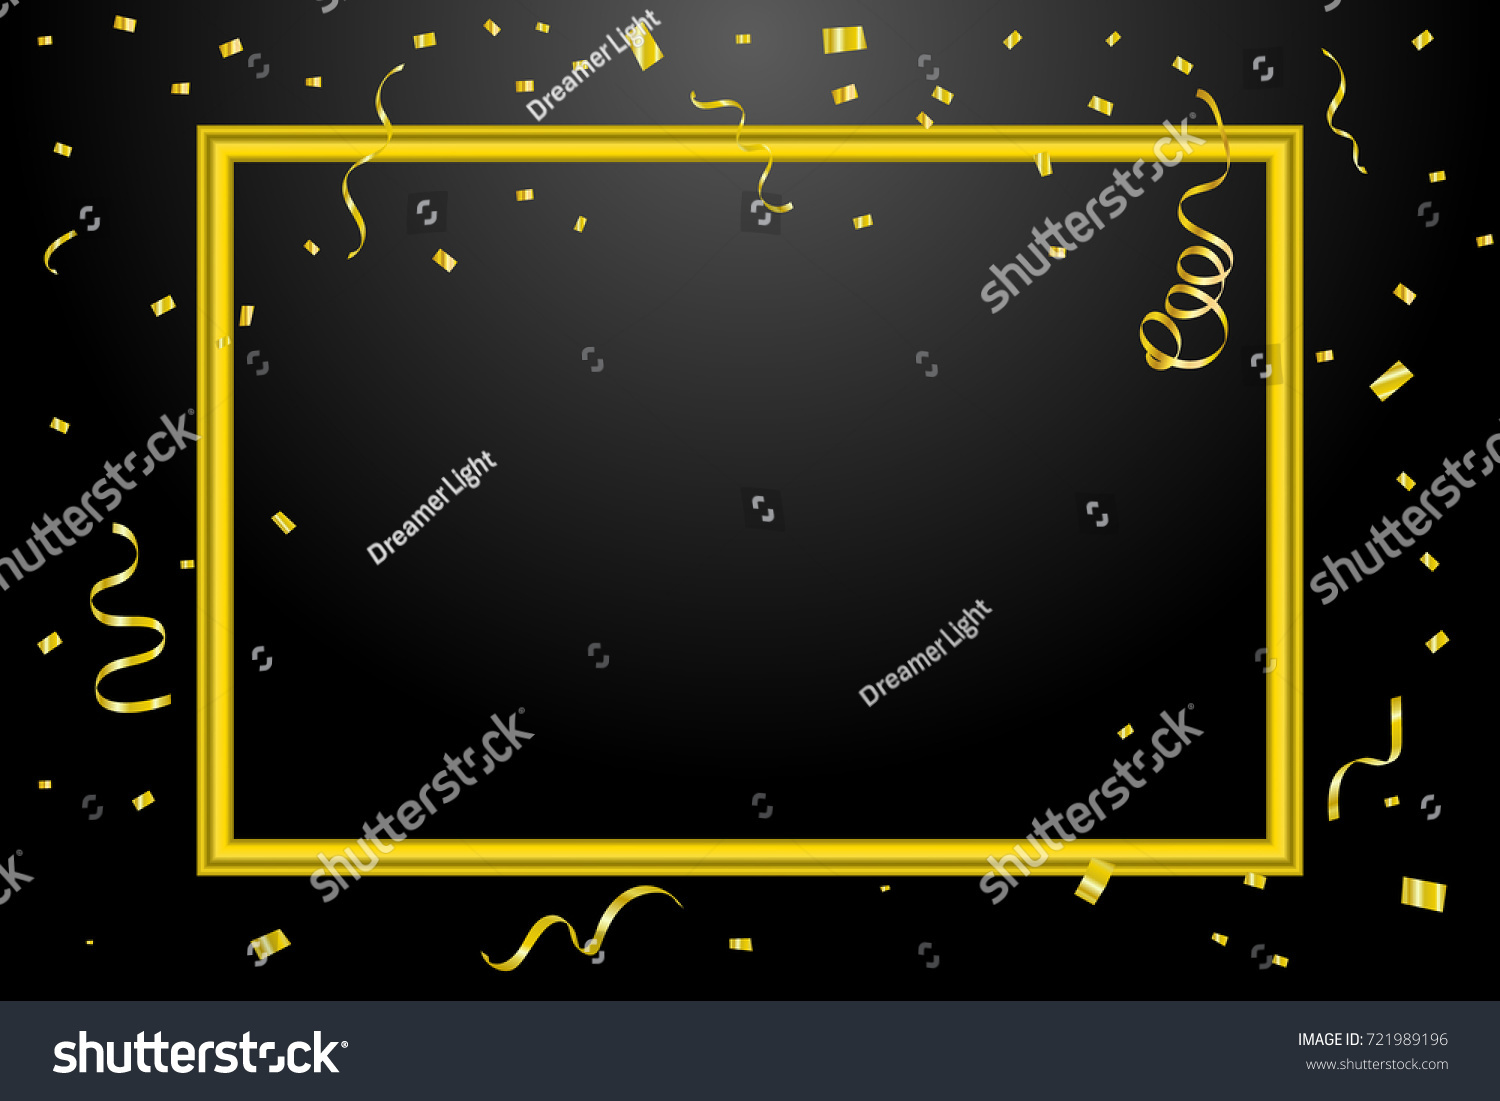 golden confetti and ribbons with border frame on black background celebration happy new year